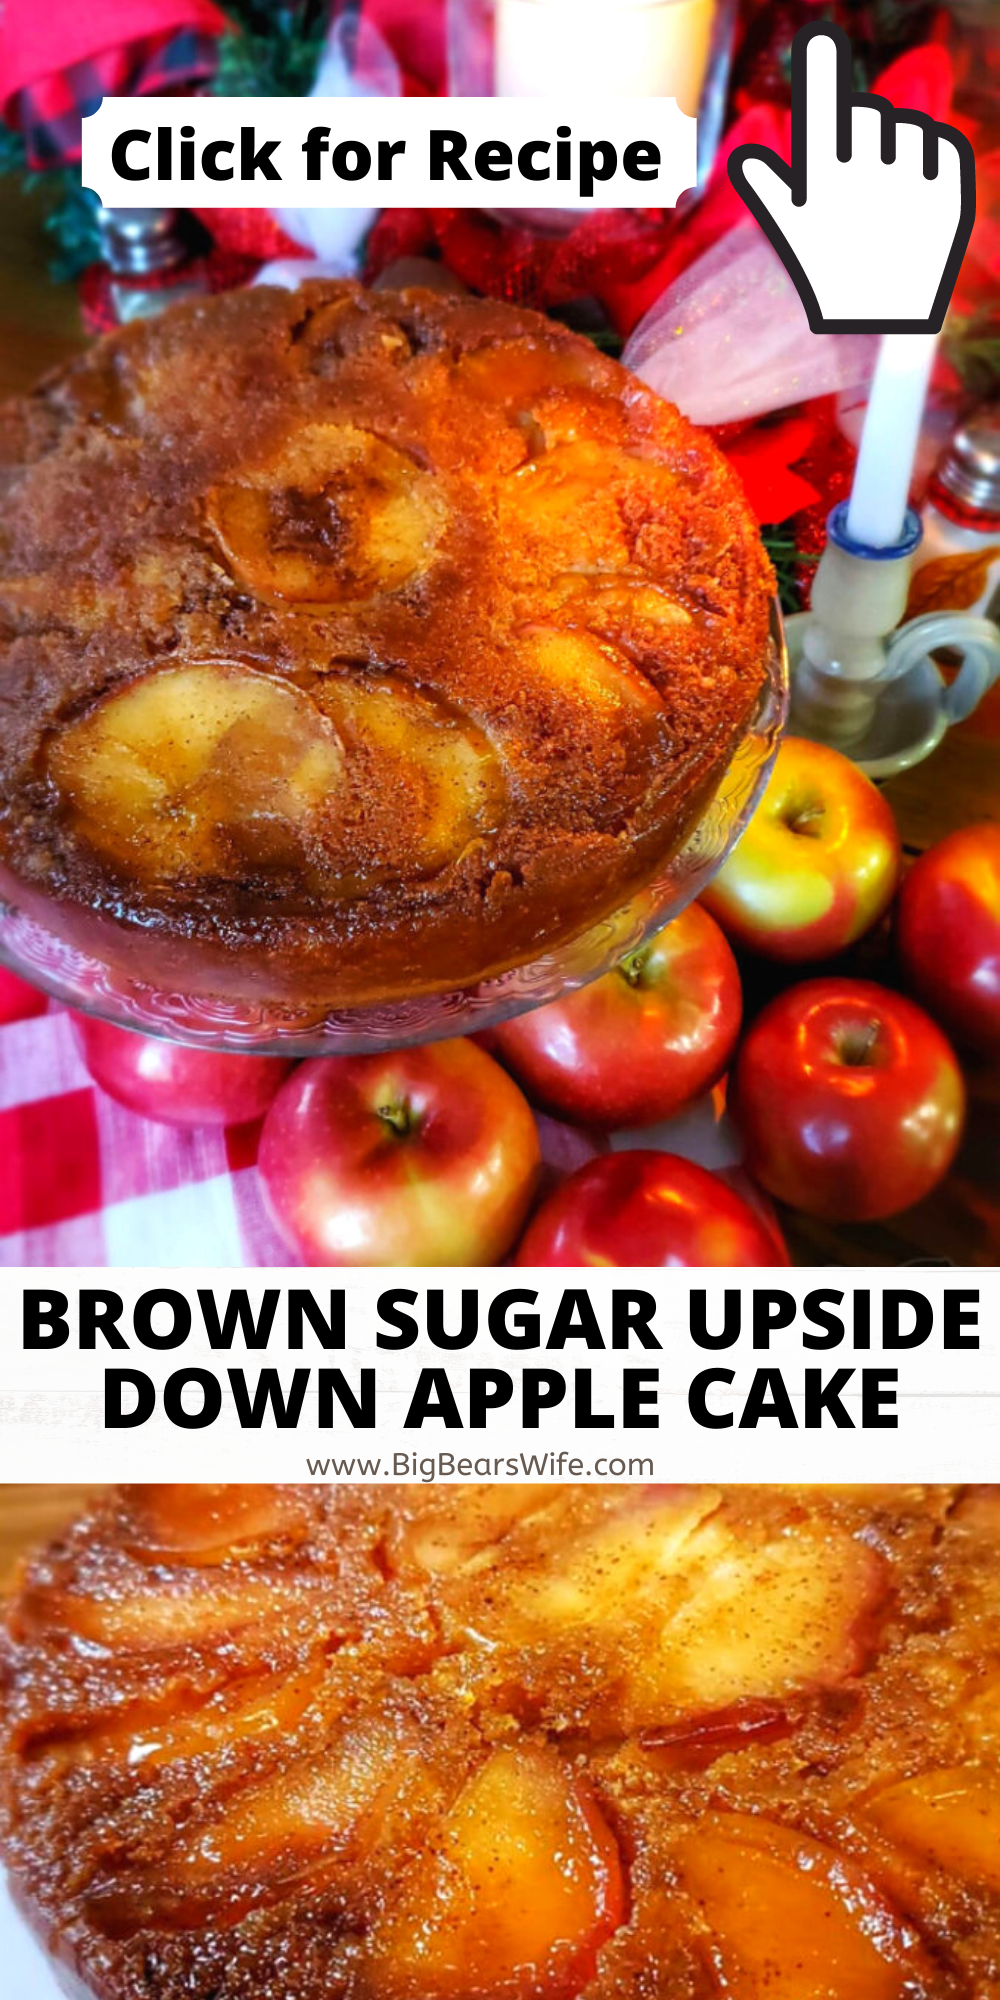 This Brown Sugar Upside Down Apple Cake is a old fashioned apple cake with a modern shortcut in the ingredients list! It's beautiful, delicious and super easy to make!